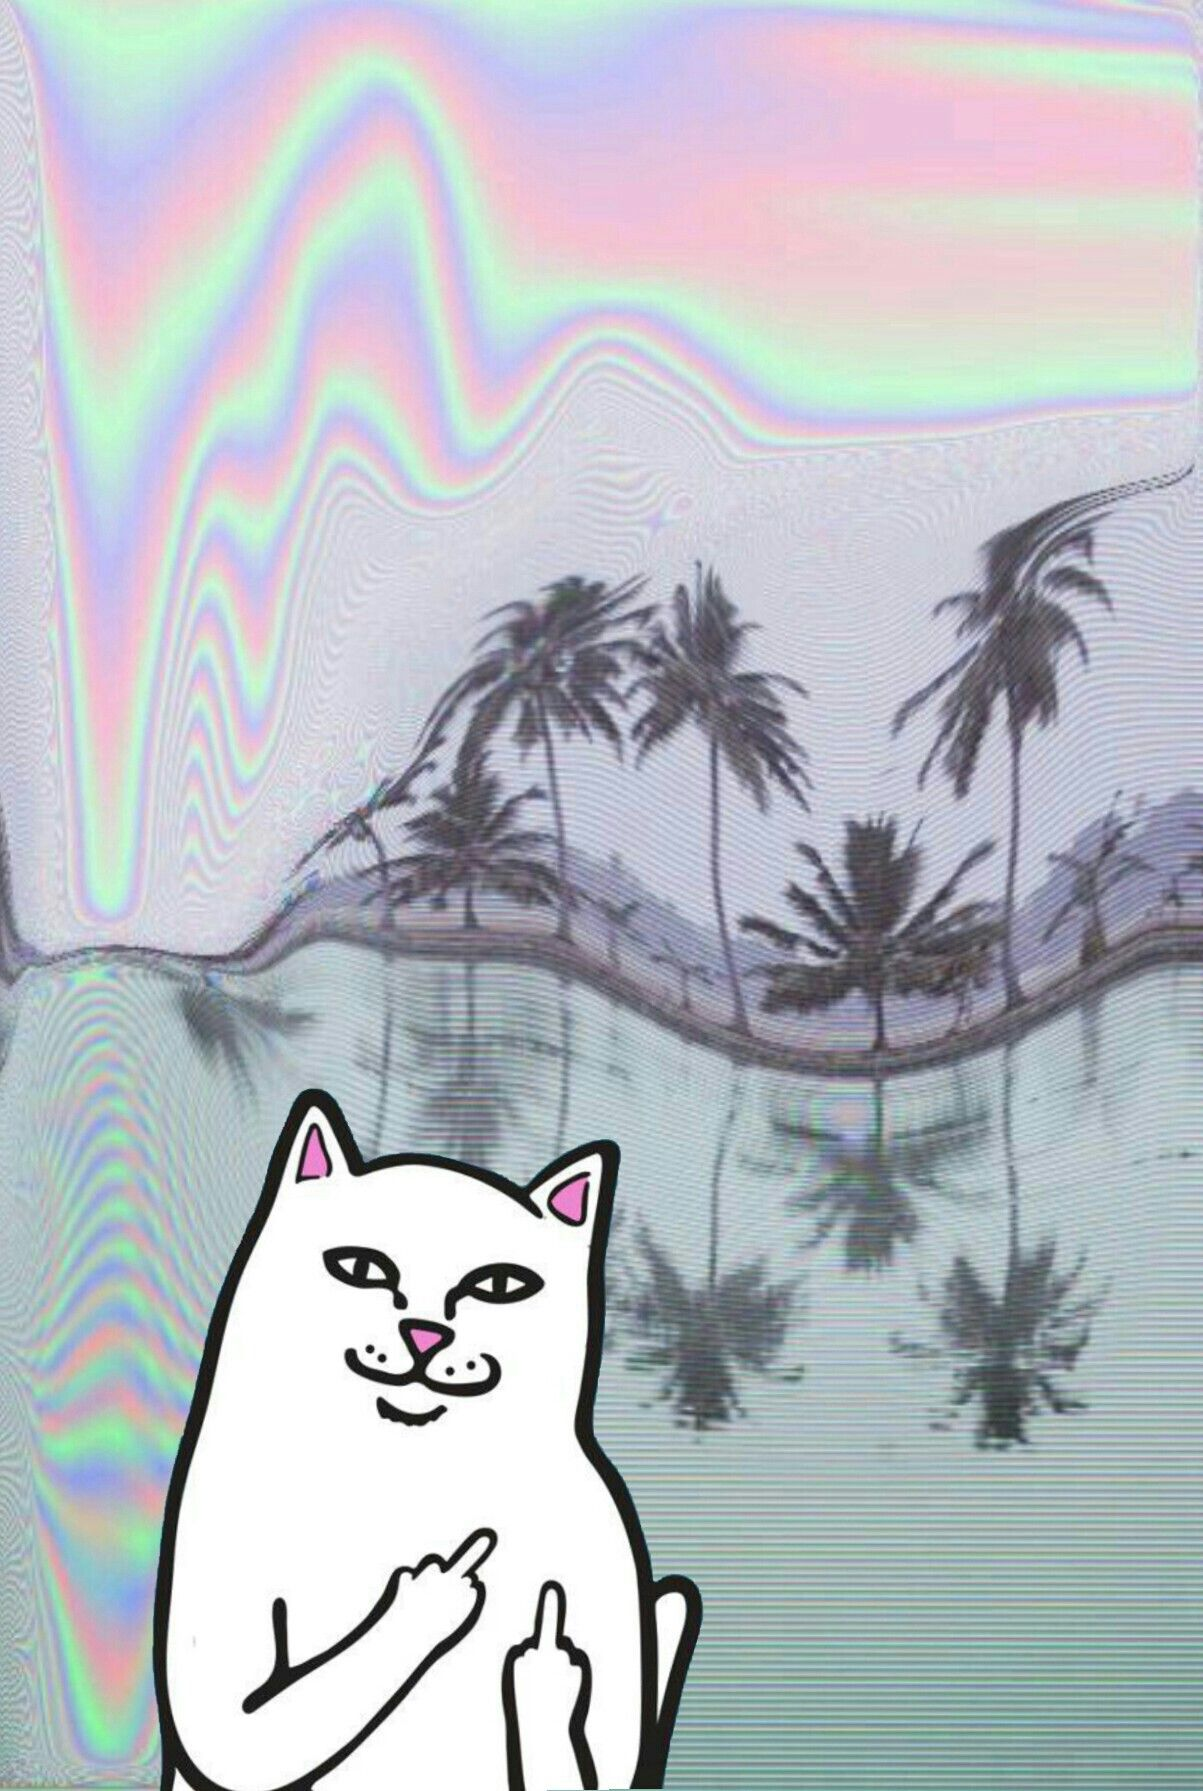 ripndip and ripndip with - photo #38